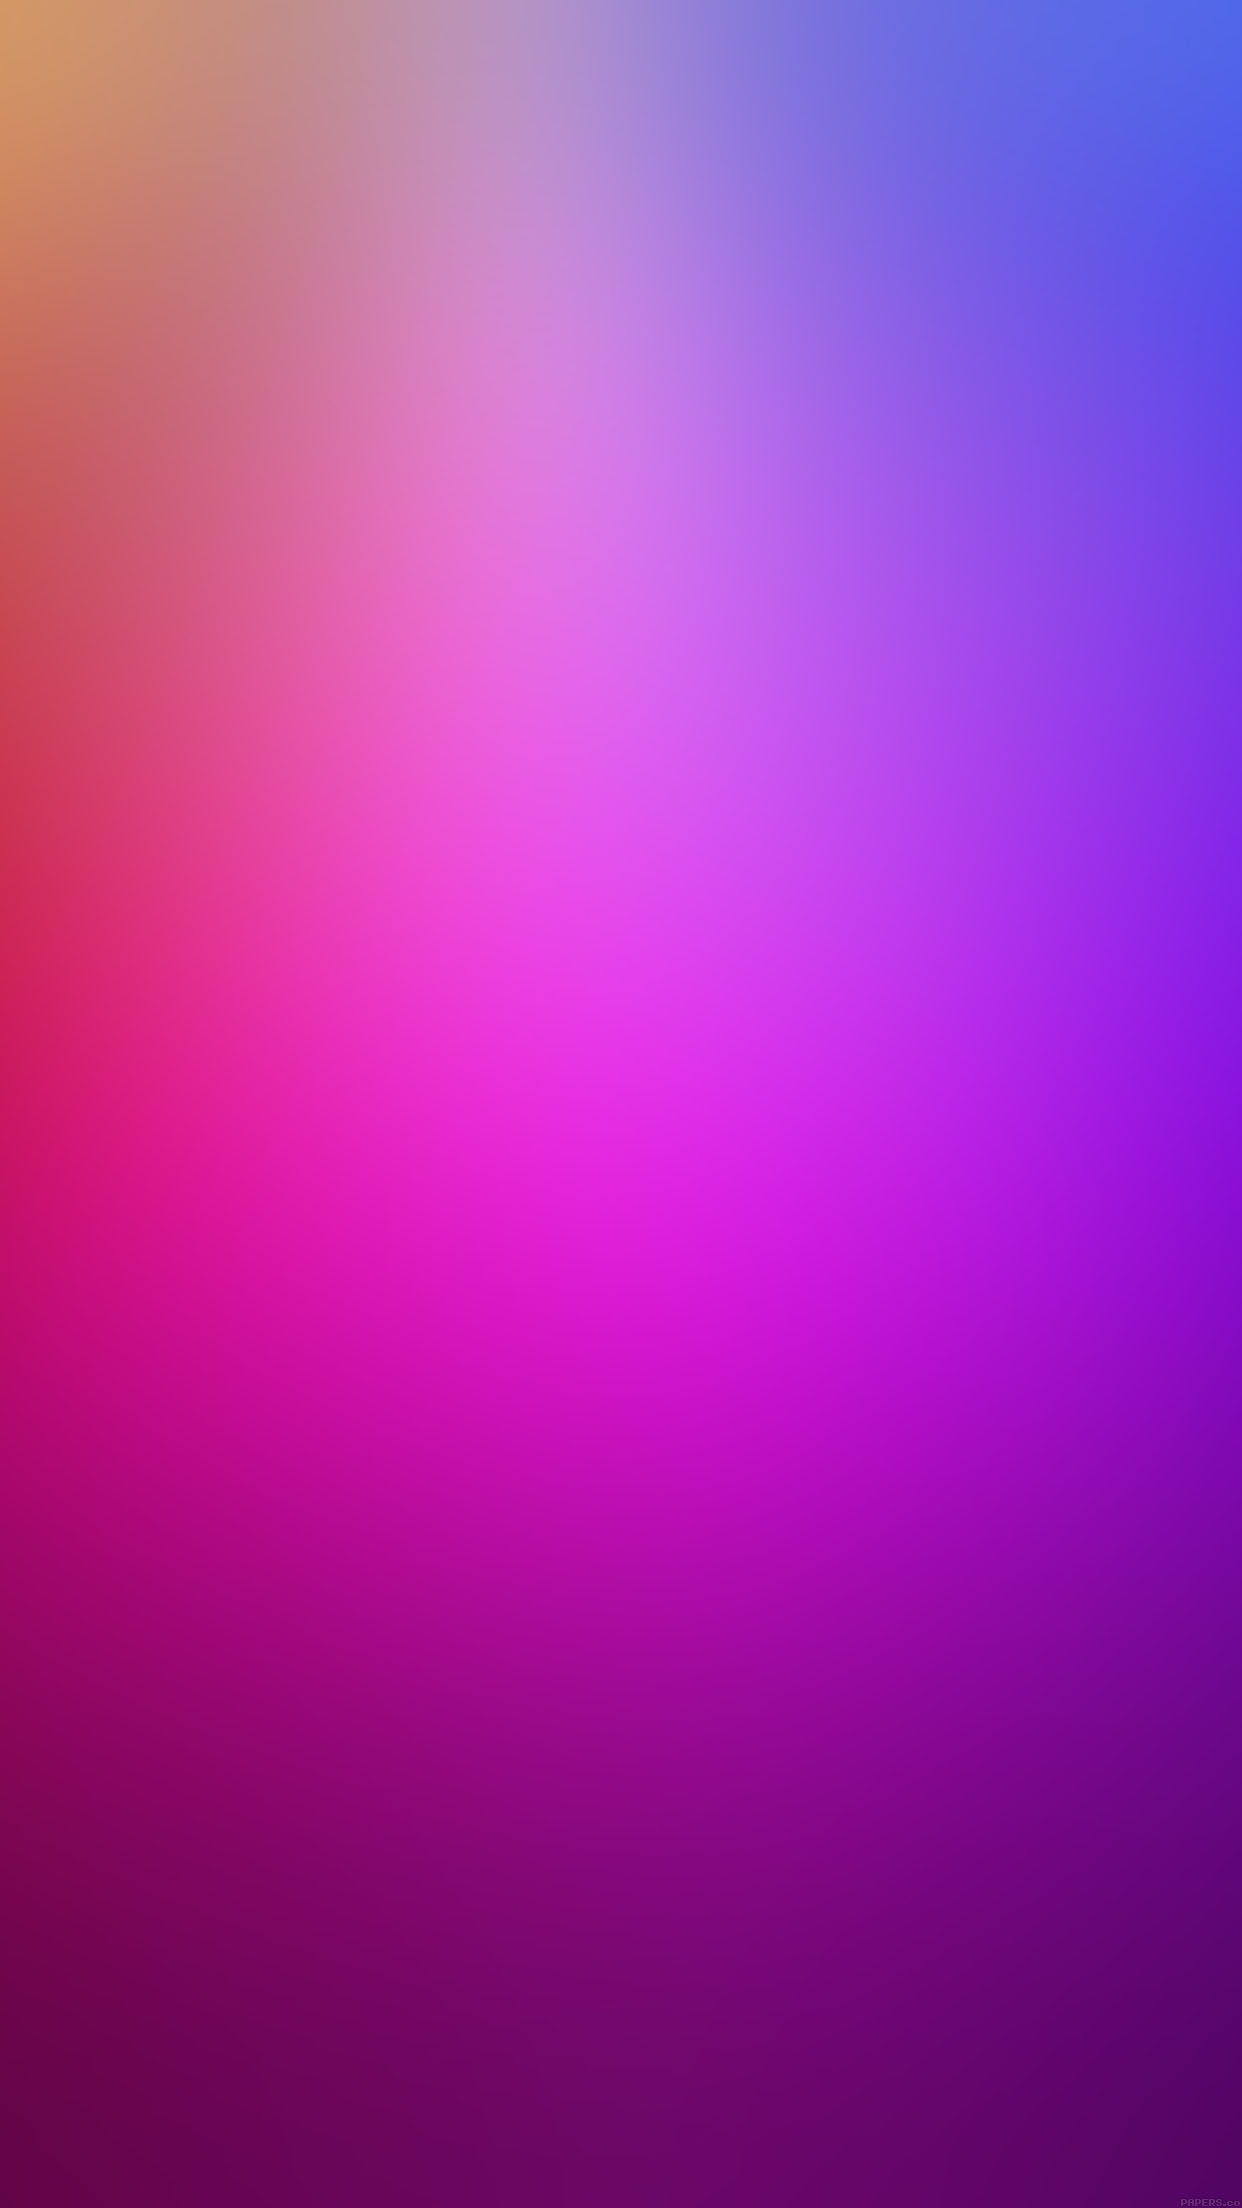 Iphone6papers Sb63 Wallpaper Rainbow Red Lights Patterns Blur